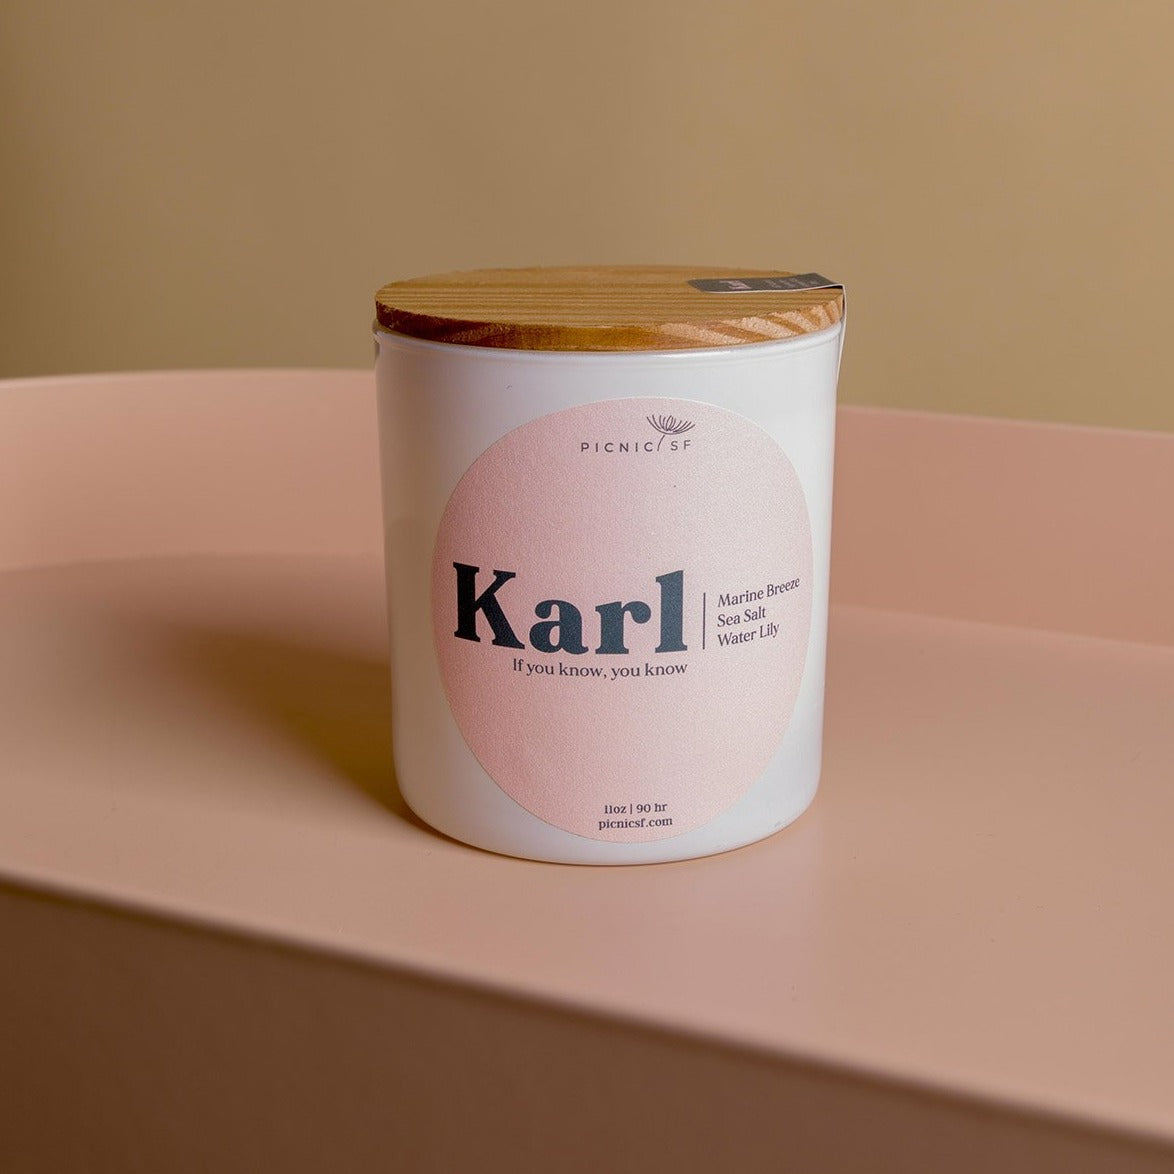 Karl Candle a Picnic exclusive San Francisco candle is available at Picnic SF